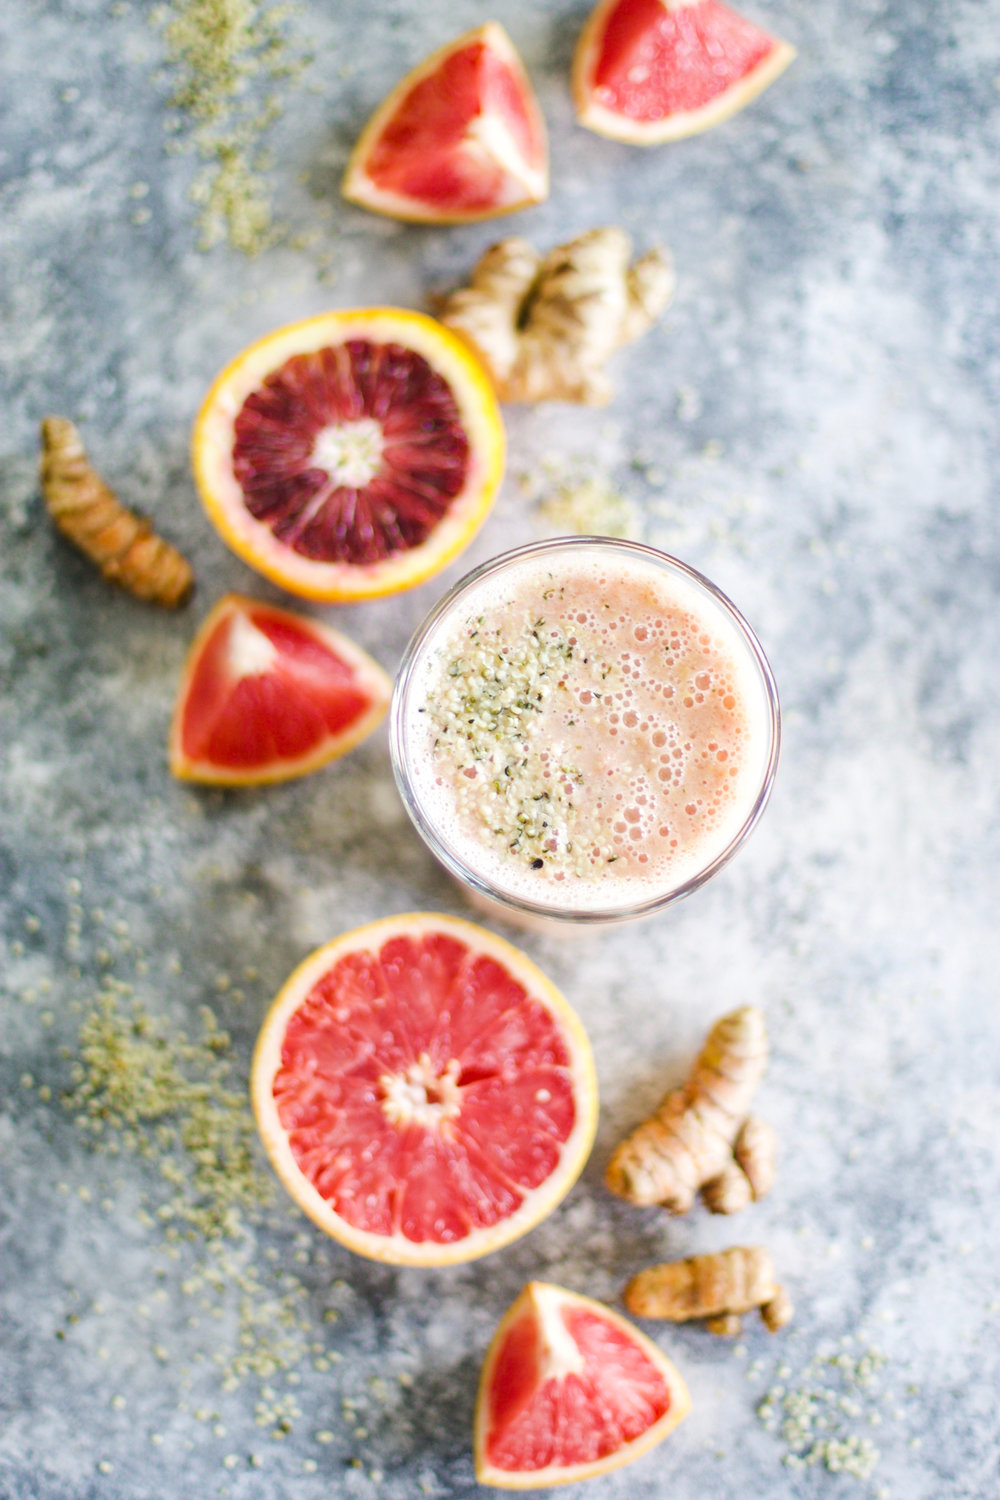 Citrus Smoothie: My Diary of Us